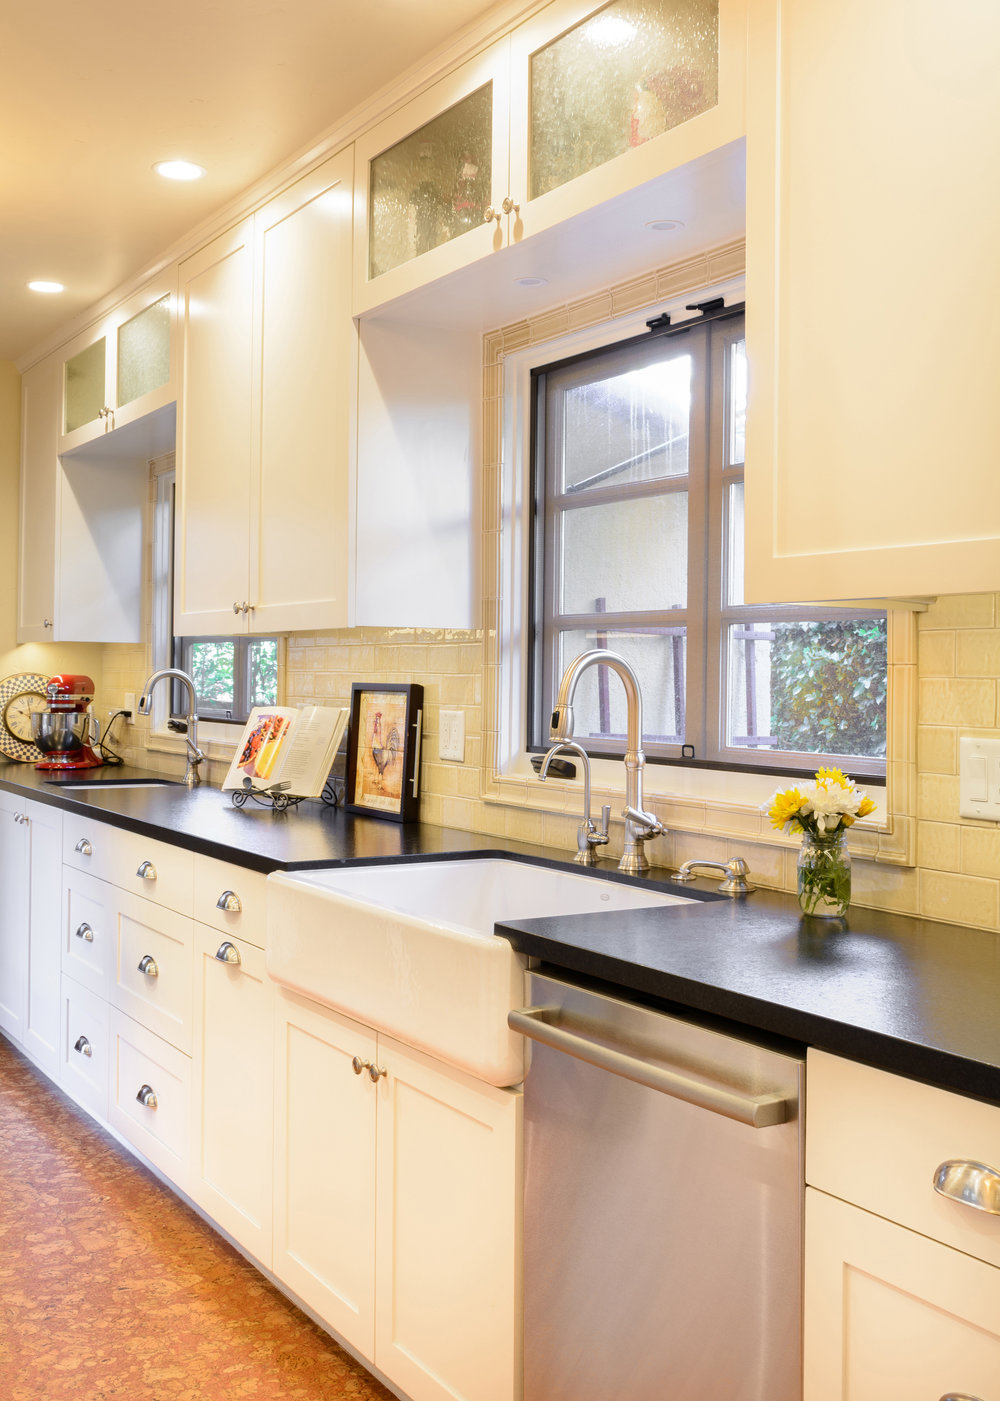 The farmhouse sink, also called apron sink, constitute another key feature for this old world kitchen